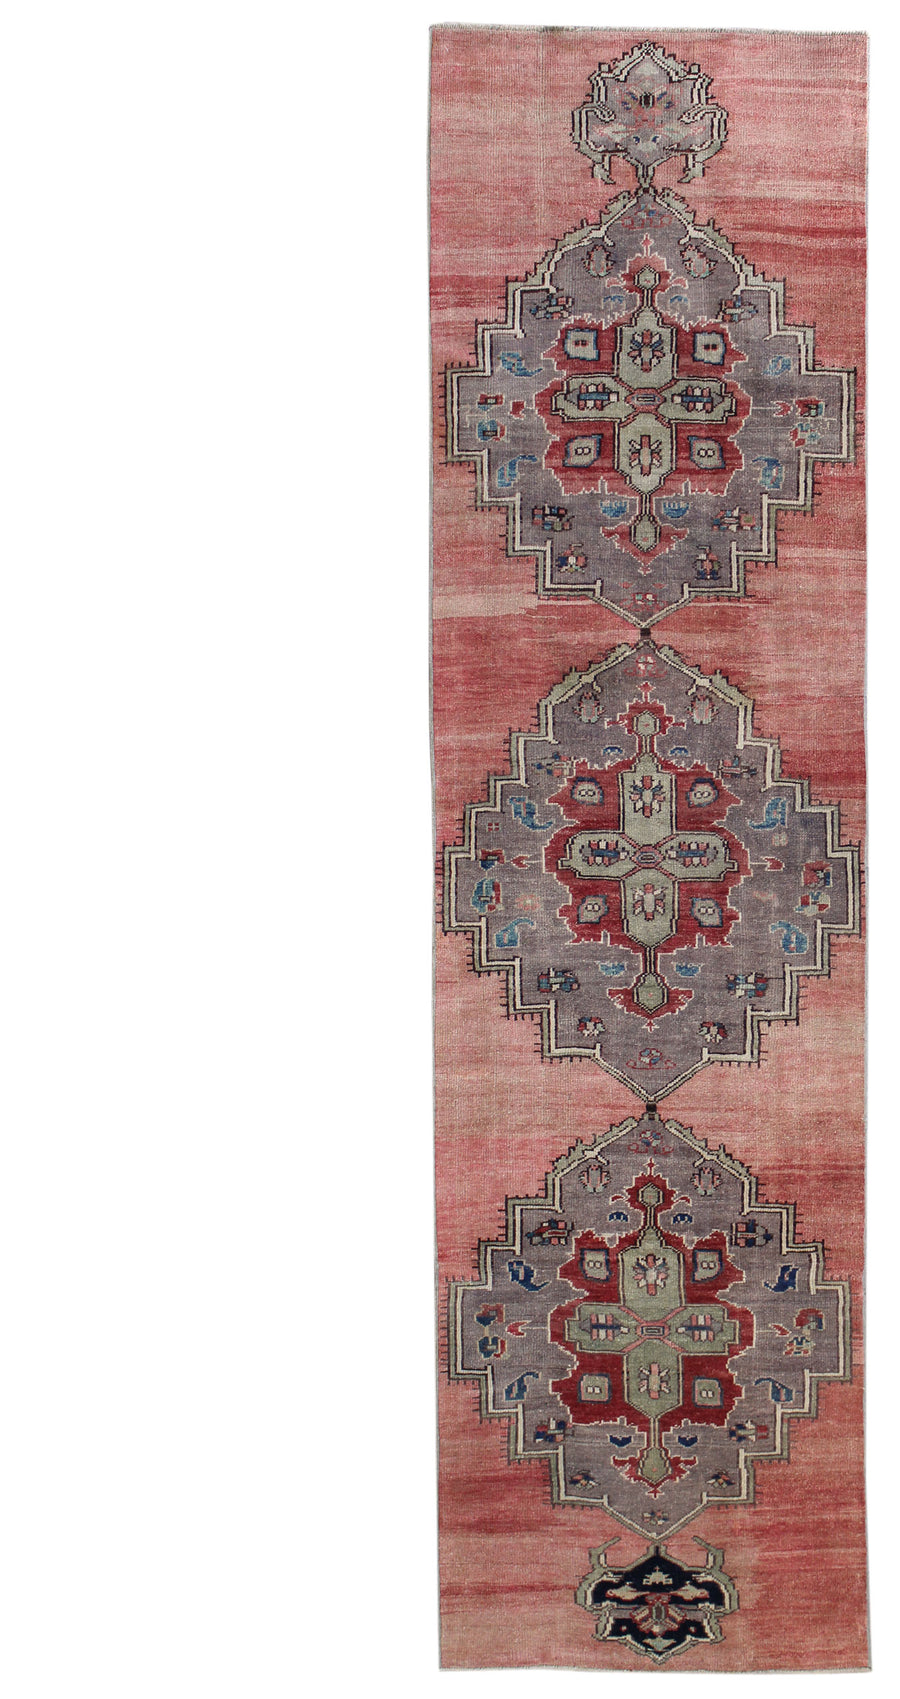 KURDISH HANDKNOTTED RUG, J54119